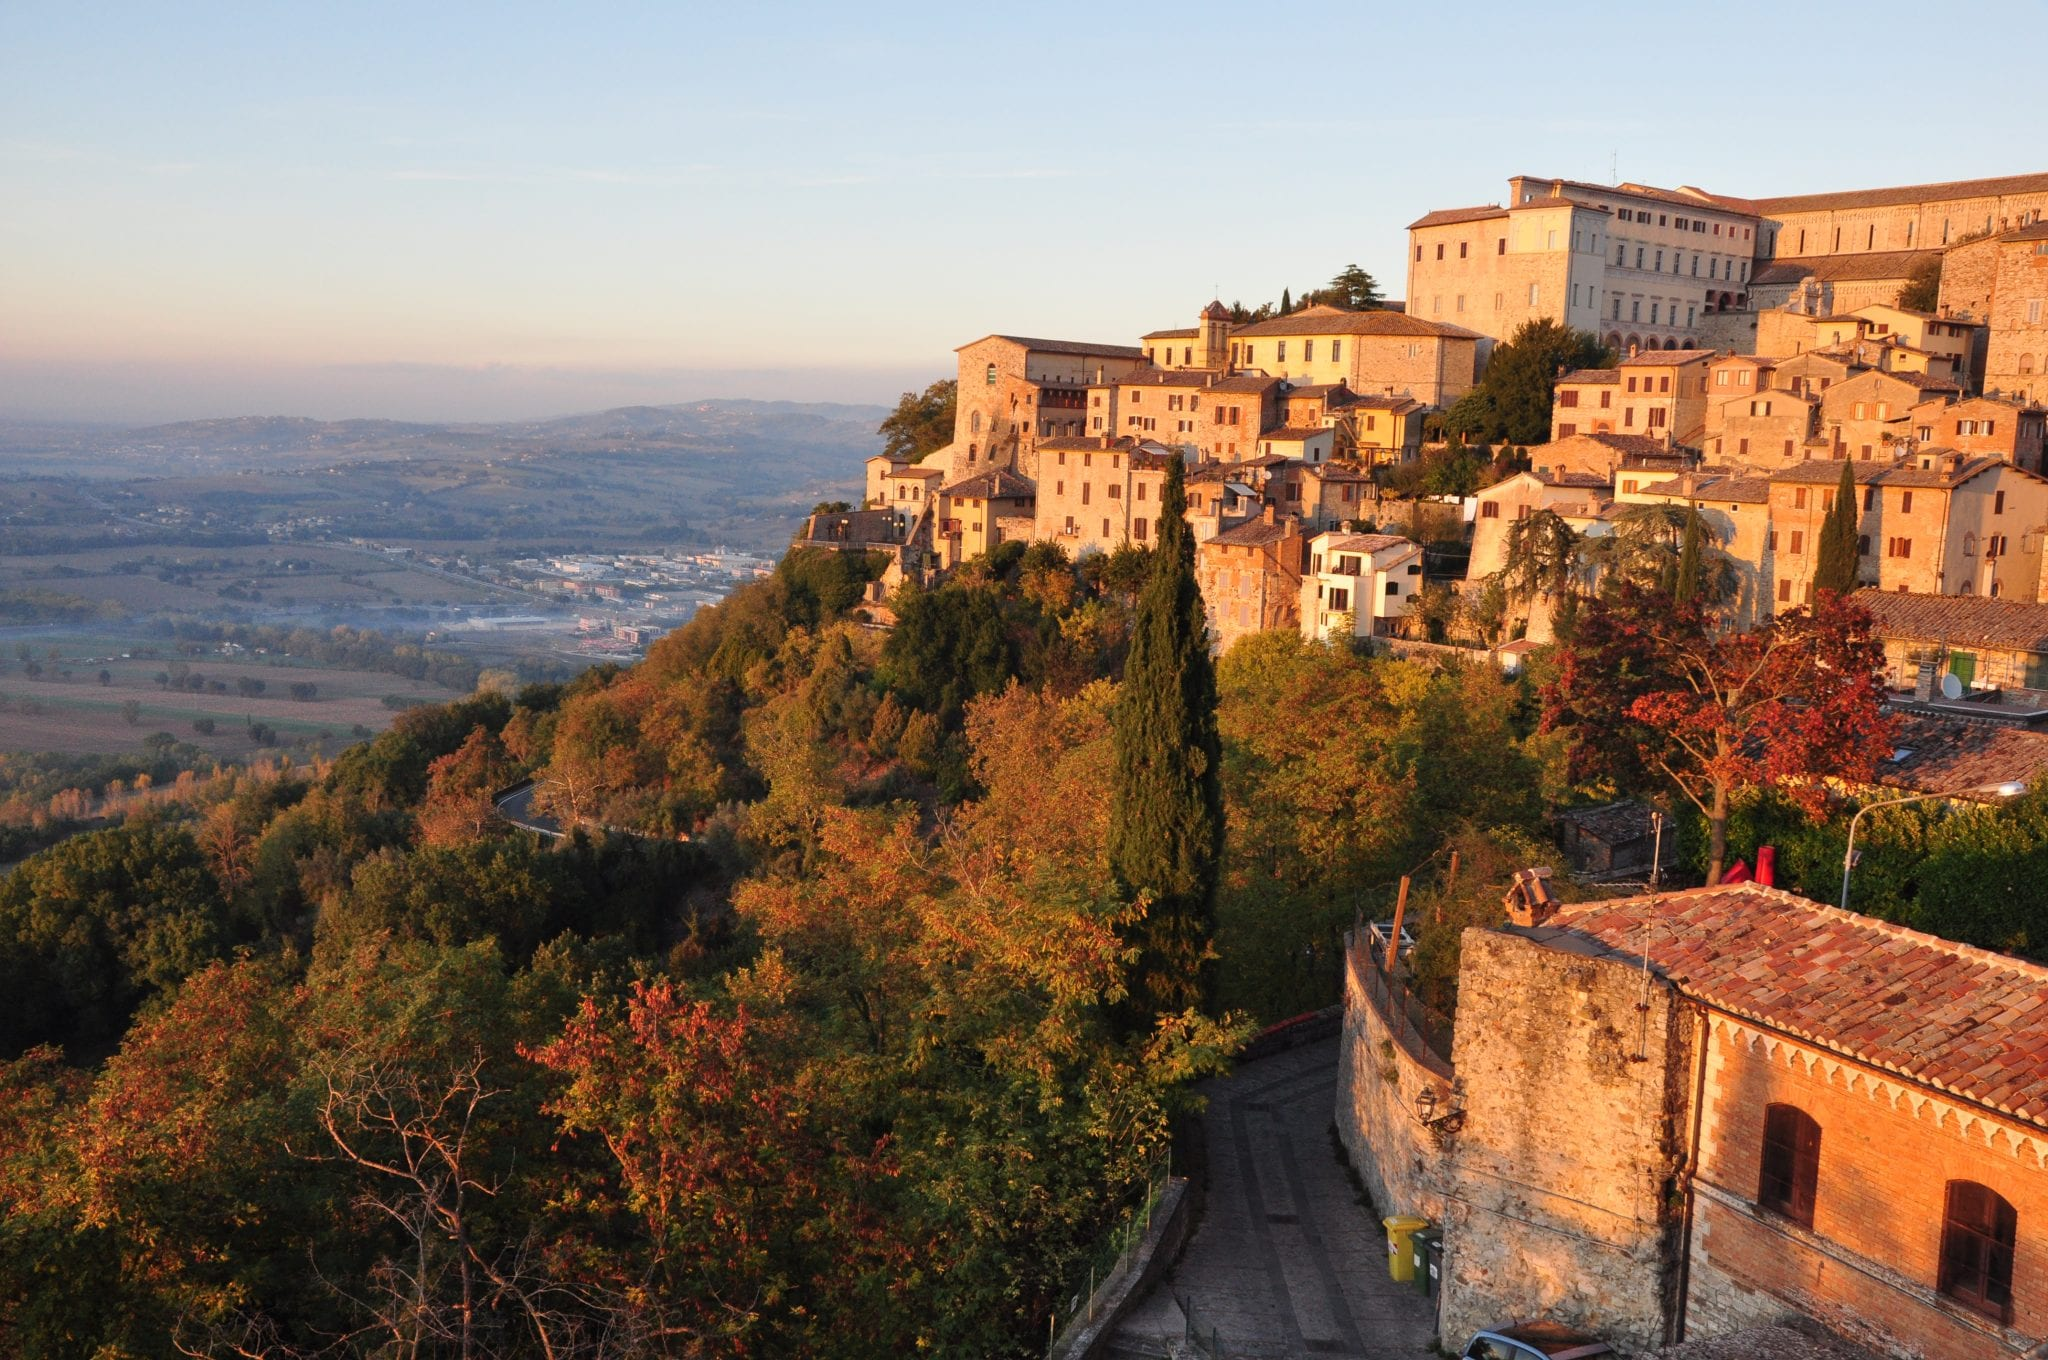 Beautiful Umbrian town of Todi